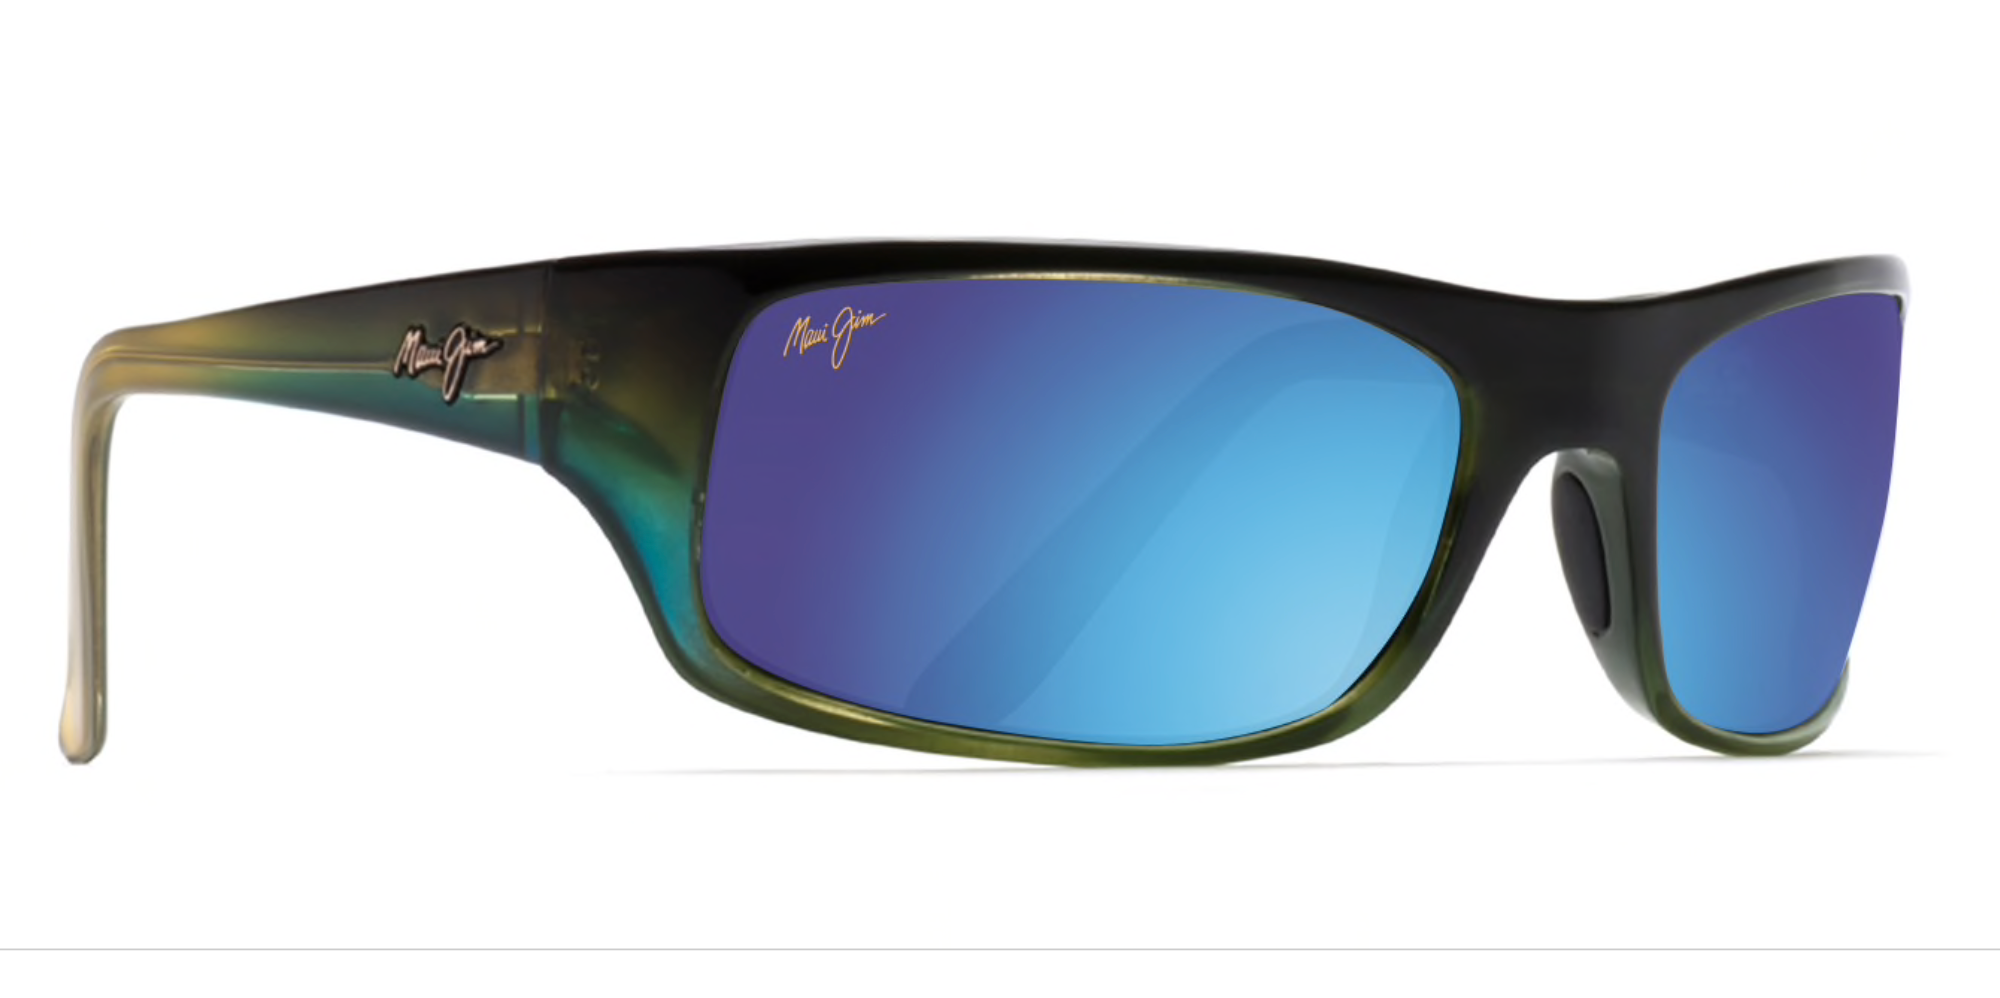 d4f16dd2360f Maui Jim Peahi 202 Sunglasses Mahi Mahi w/ Maui HT, Blue Hawaii, Grey Lenses  - Flight Sunglasses